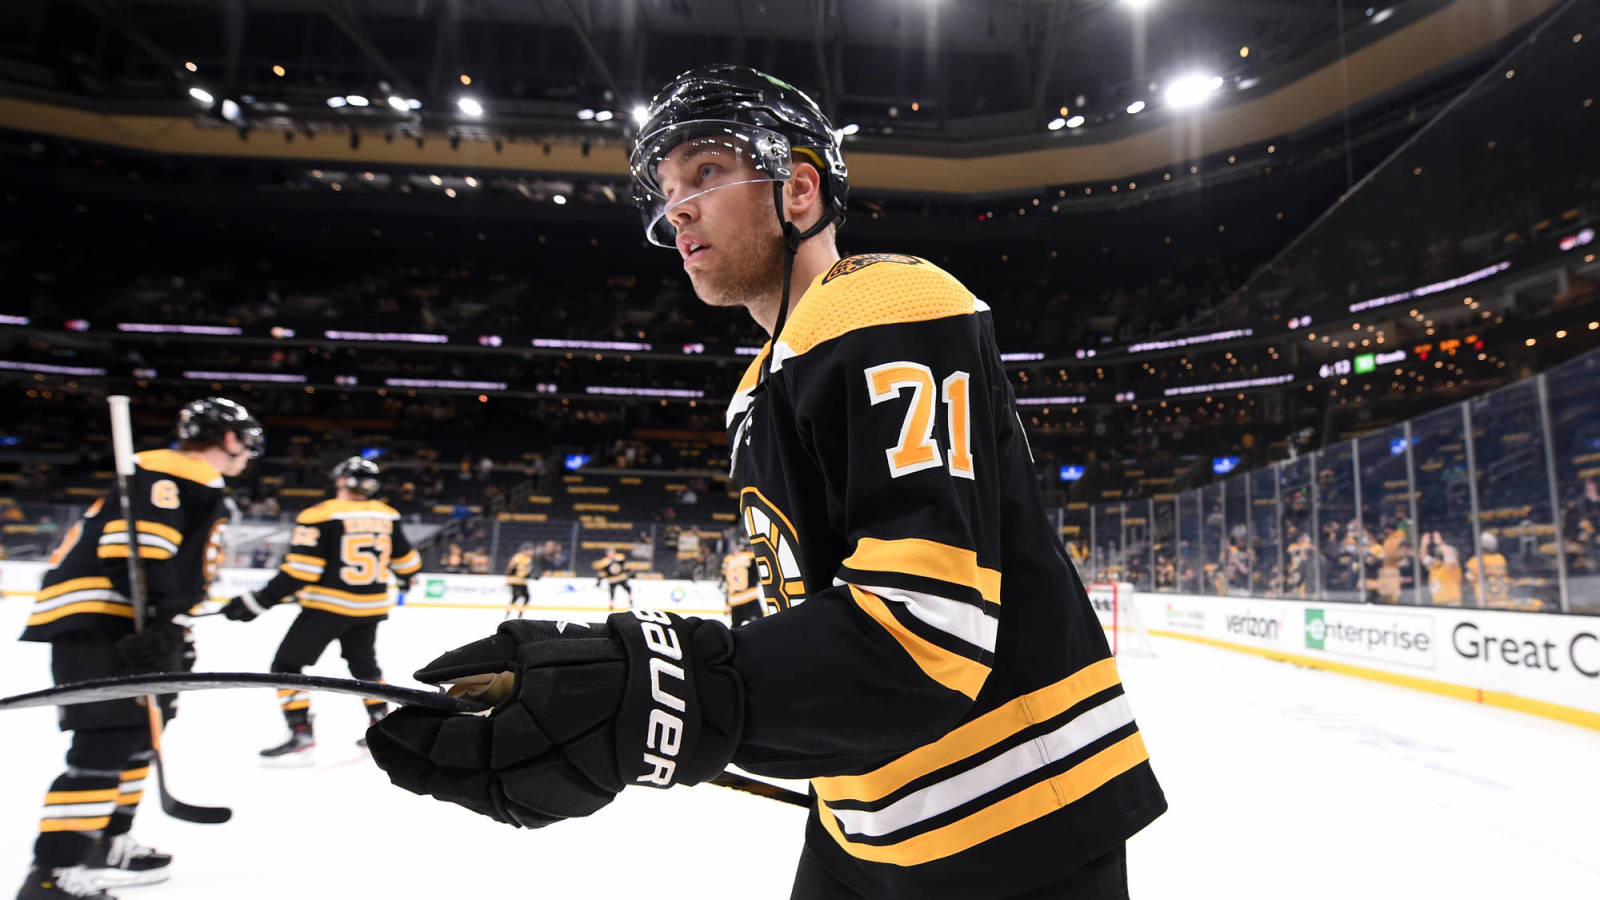 Taylor Hall and Bruins agree to four-year, $ 24 million deal